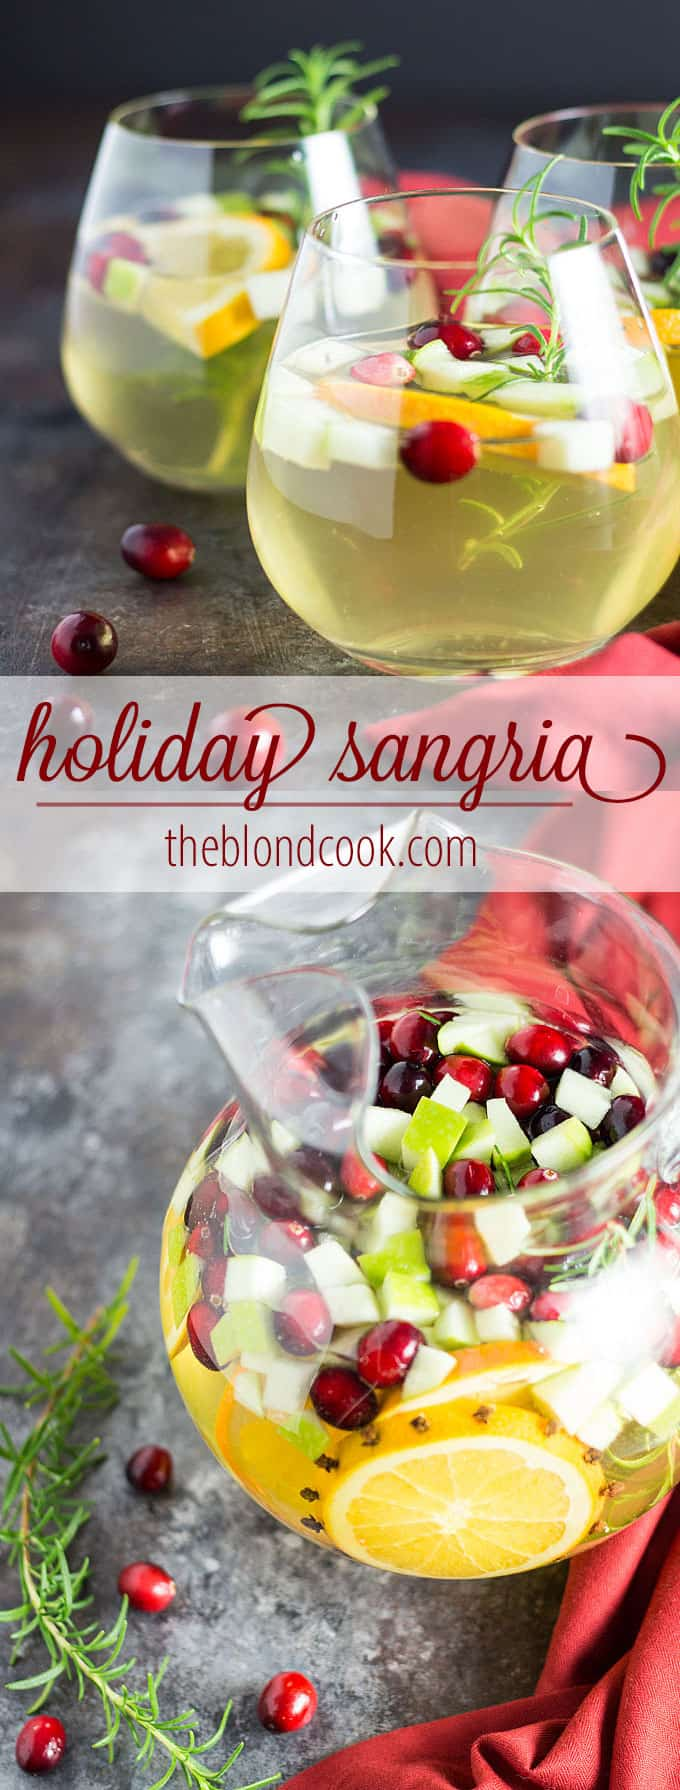 Holiday Sangria - A beautiful, festive sangria with pinot grigio, fruits, herbs and spices.